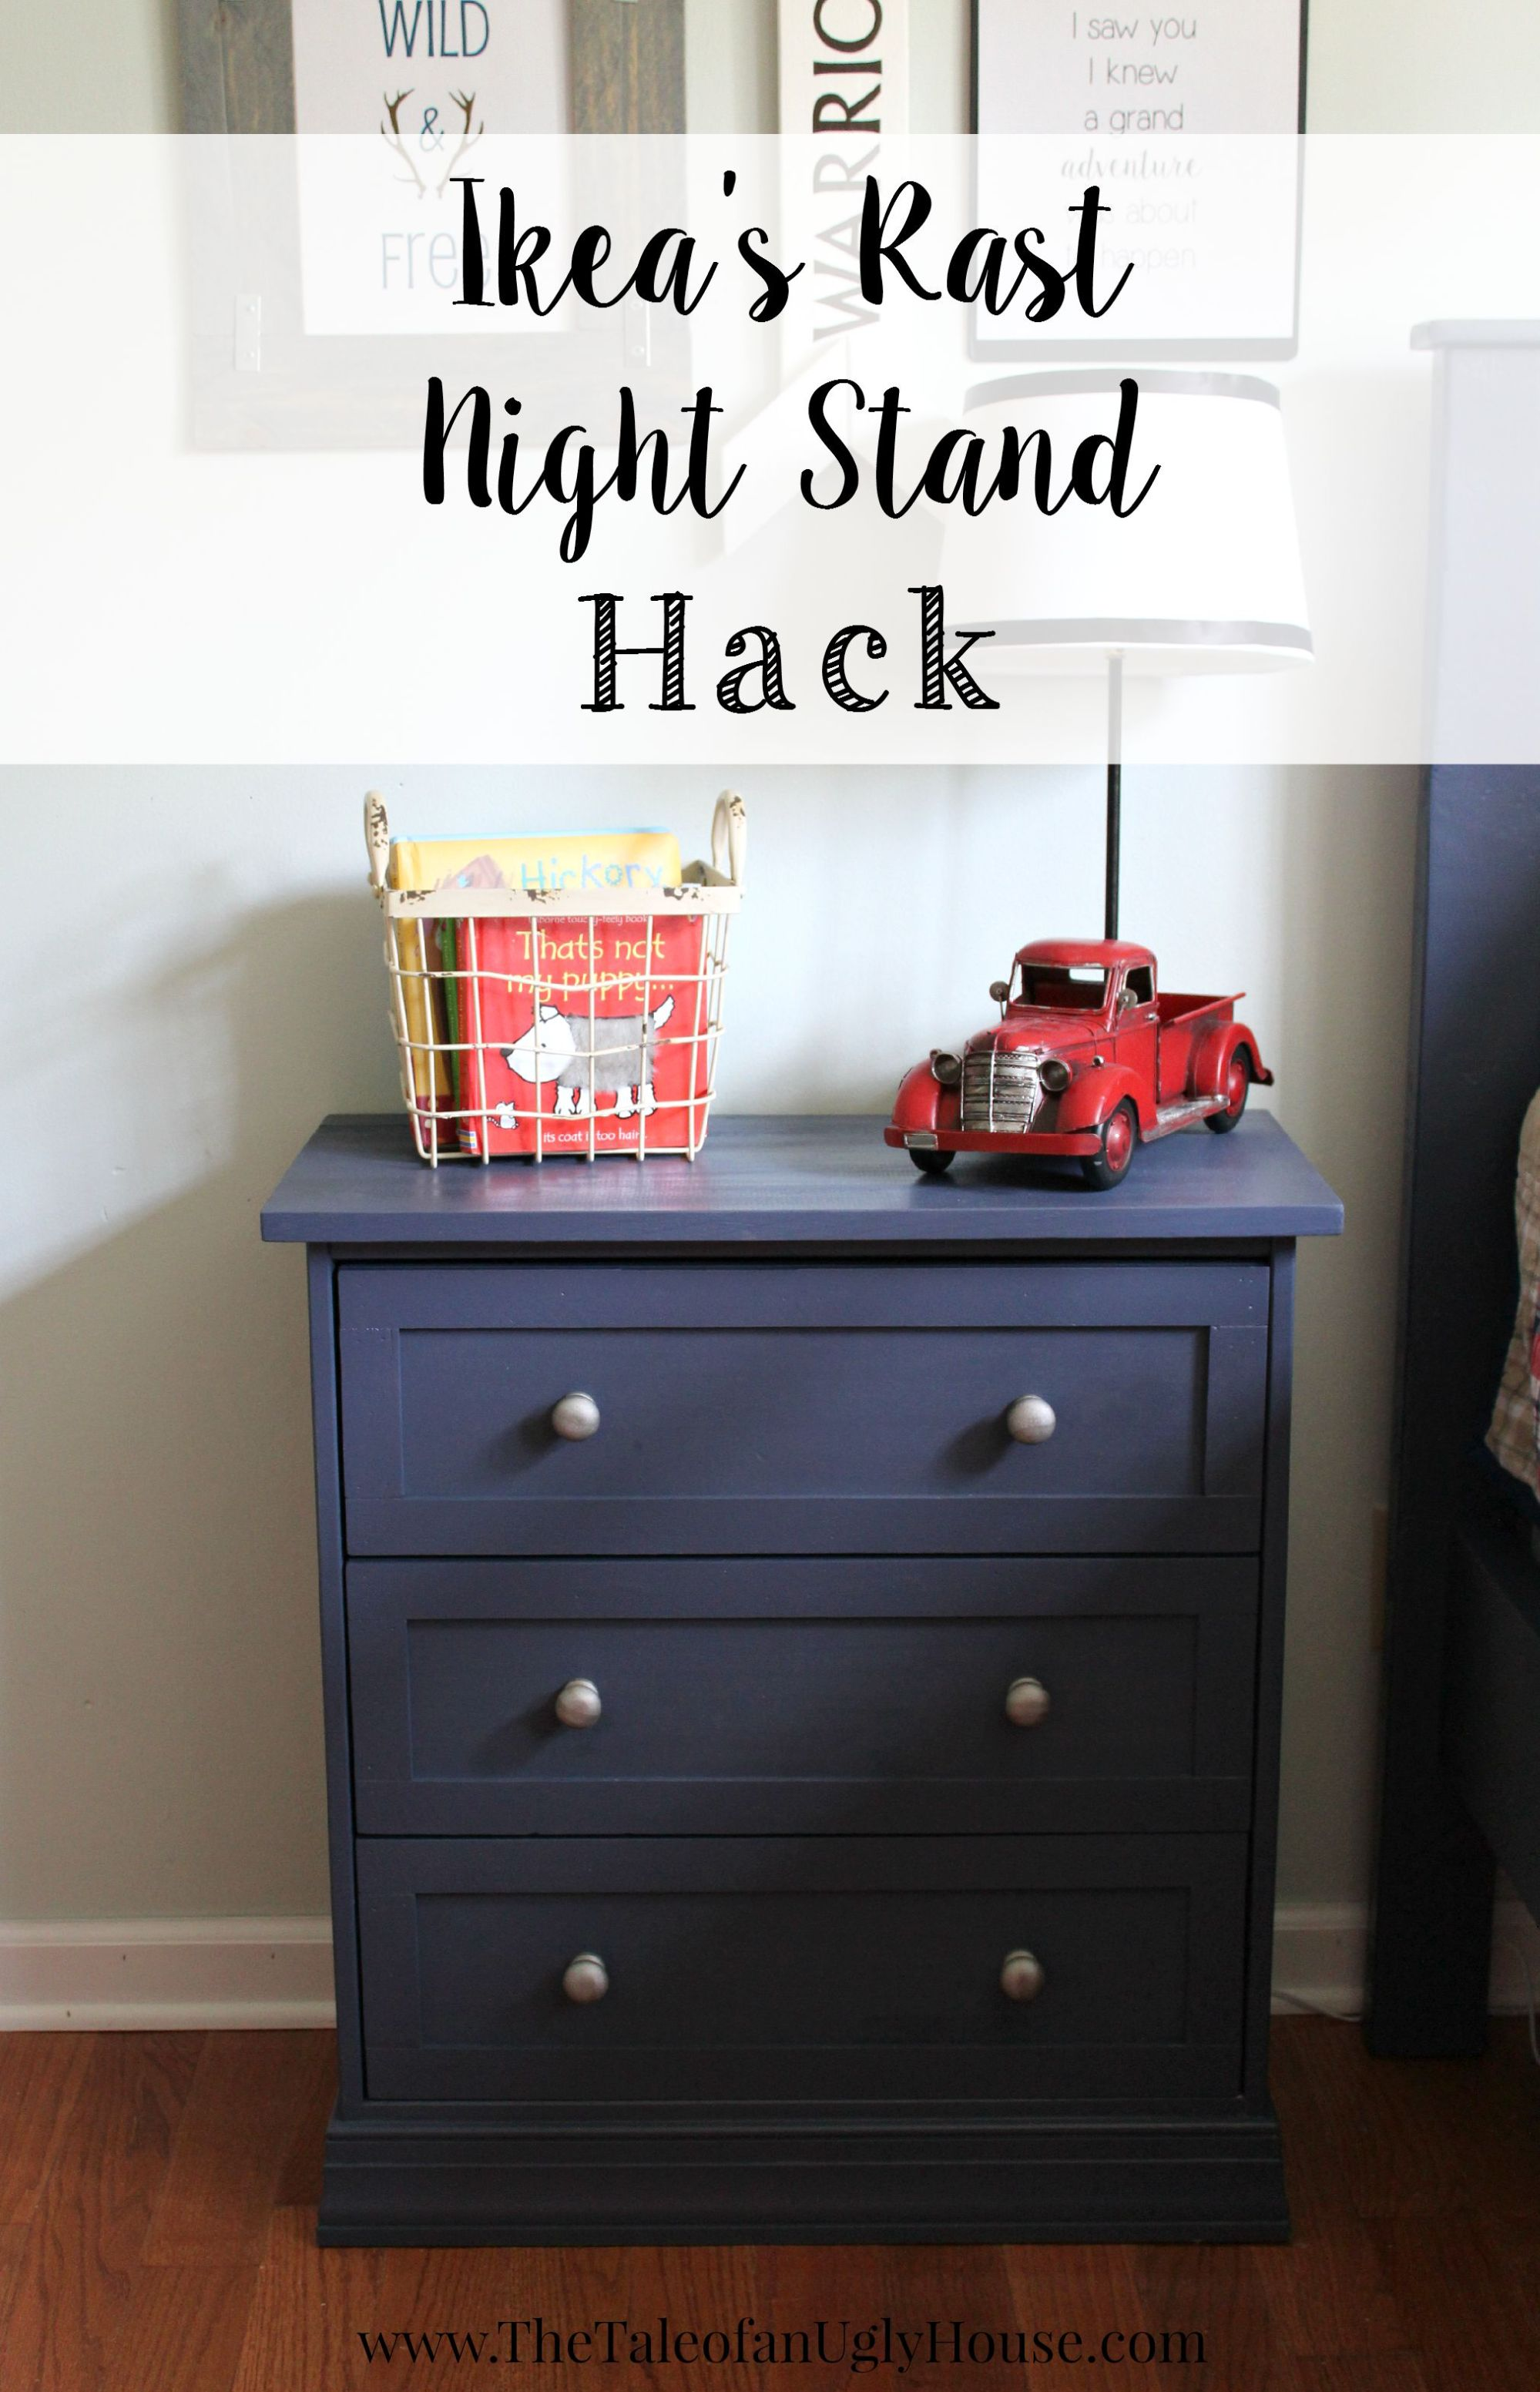 This rast nightstand painted blue with silver knobs is adorable.